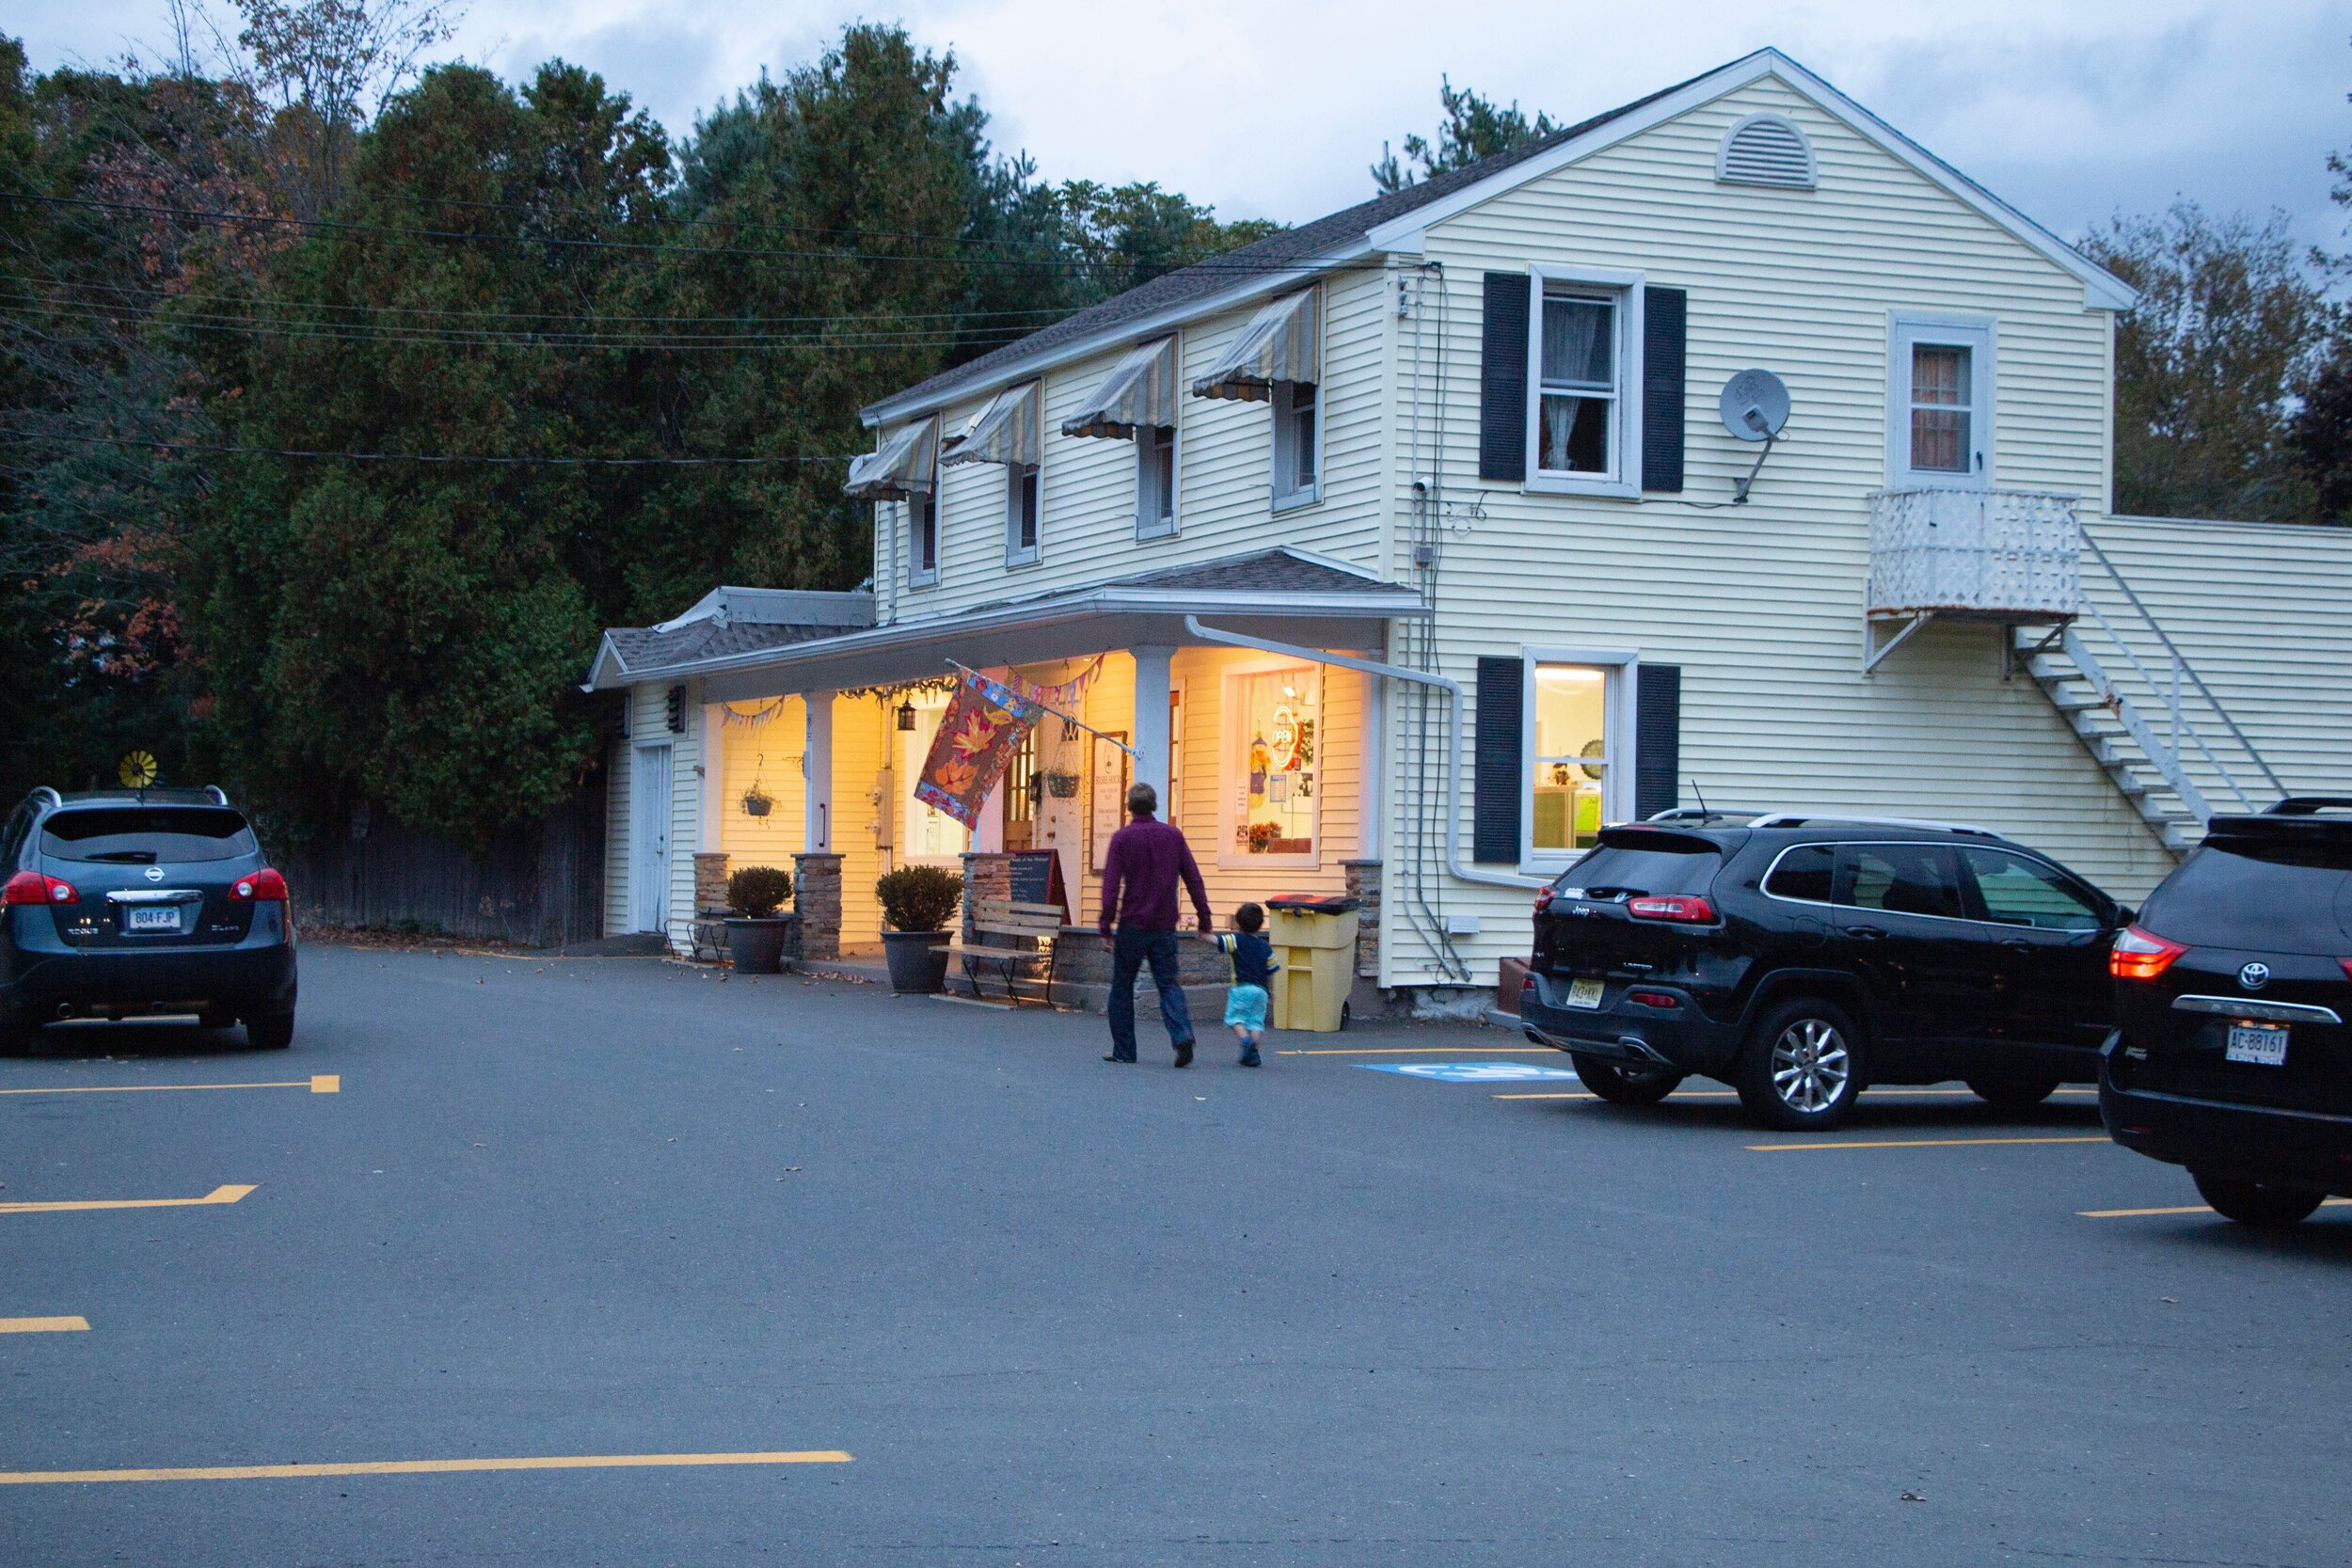 On a recent (and warm) Wednesday evening, customers at Wentworth Homemade Ice Cream enjoyed their treats inside.